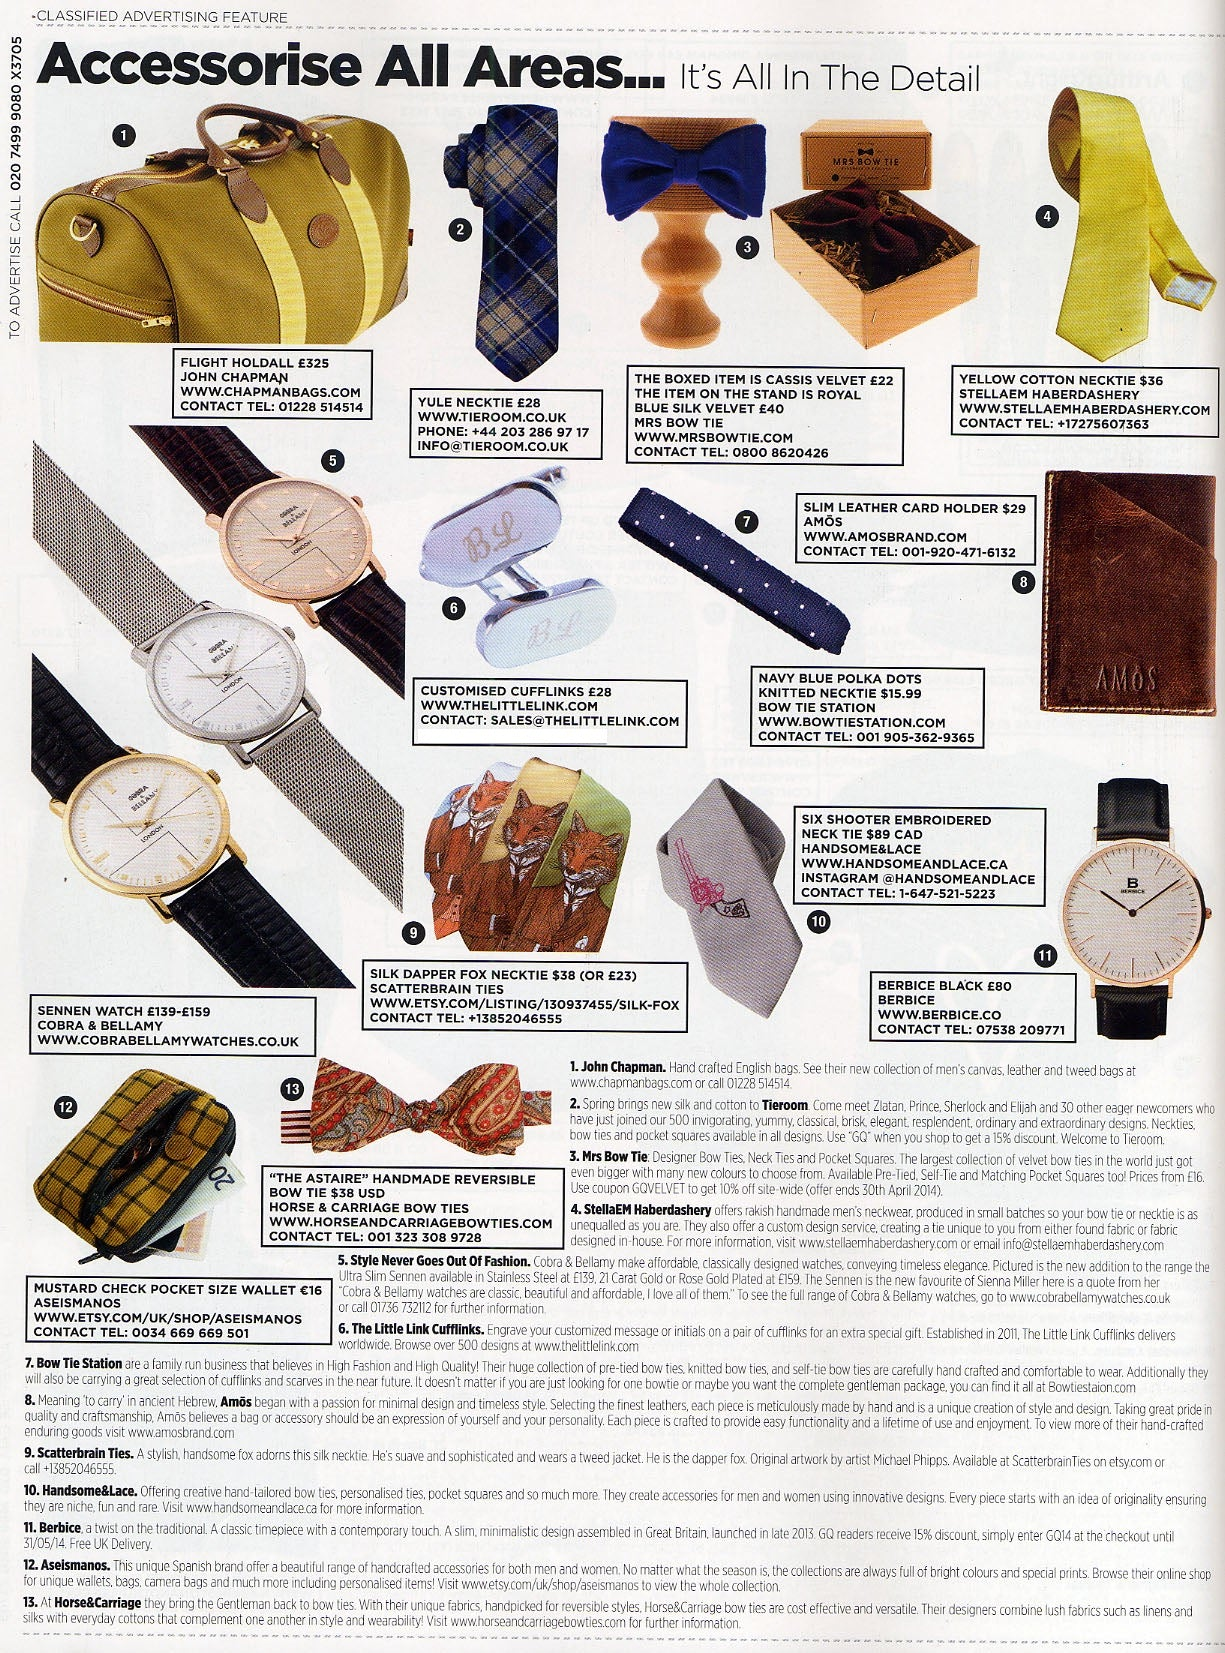 British GQ Magazine cufflinks feature